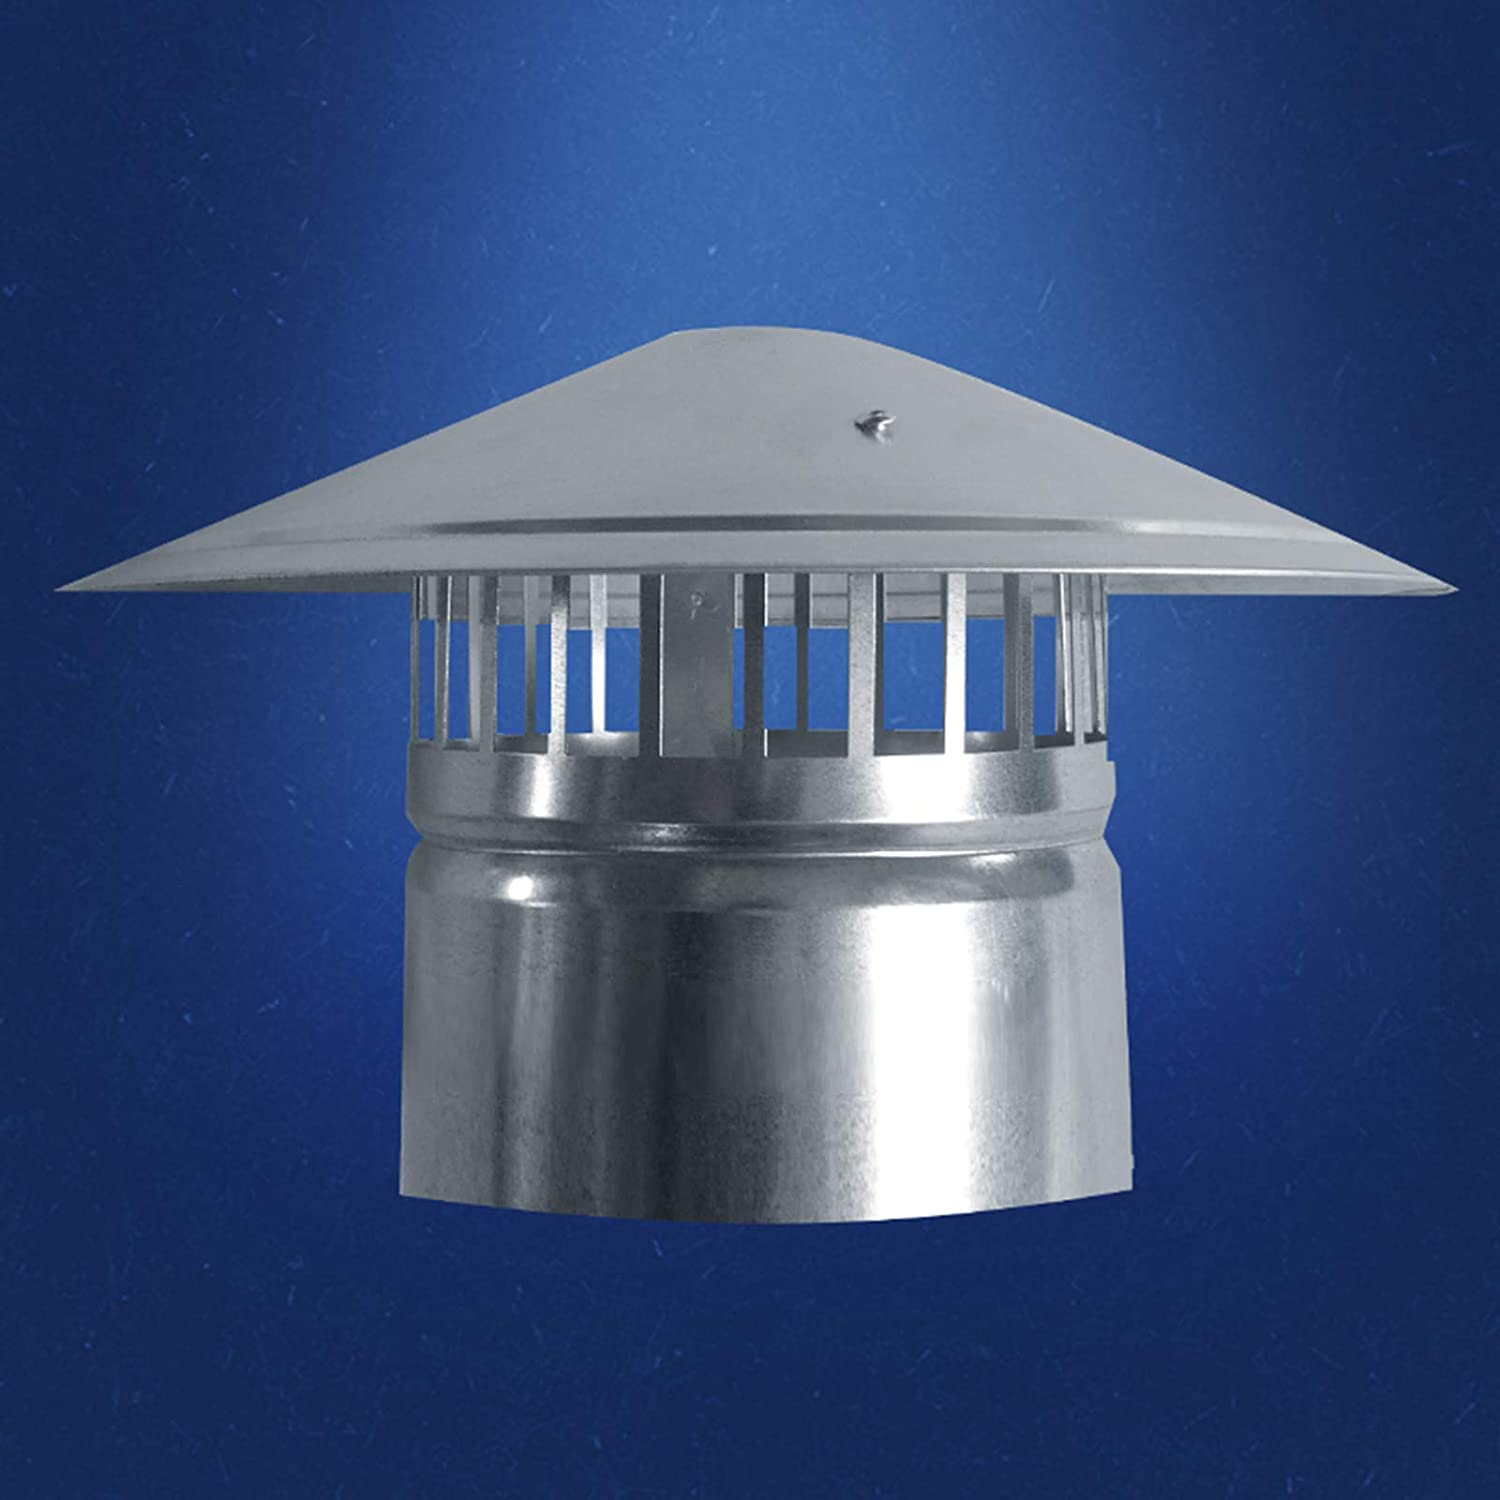 with Bird Guard Waterproof Round Air Vent Cowl Cap Rain Cover Protector Cap Ending,50mm LTLCLZ Stainless Steel Chimney Cowl Cap